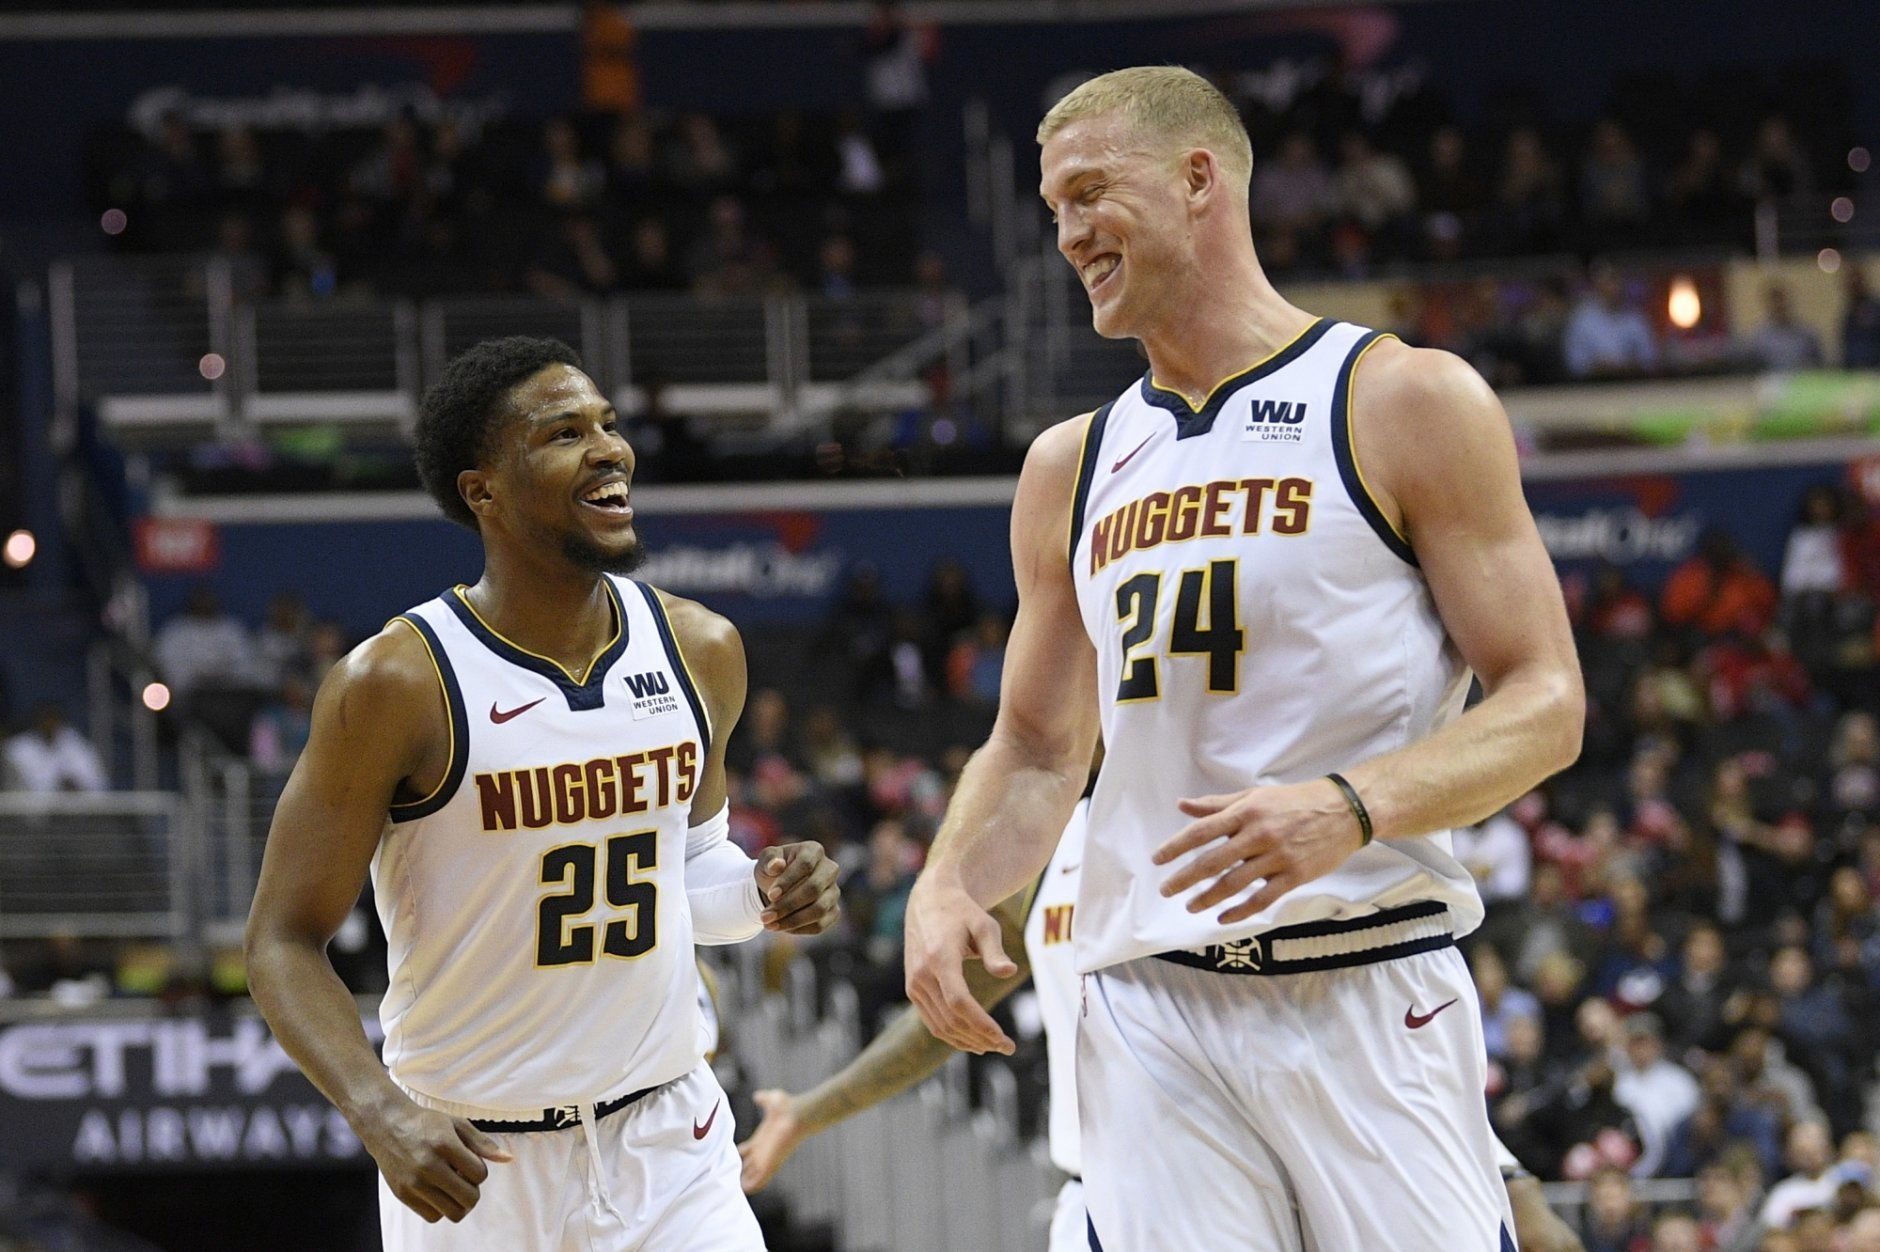 Denver Nuggets guard Malik Beasley (25) and Mason Plumlee (24) smile after Beasley made a 3-point basket during the second half of the team's NBA basketball game against the Washington Wizards, Thursday, March 21, 2019, in Washington. The Nuggets won 113-108. (AP Photo/Nick Wass)